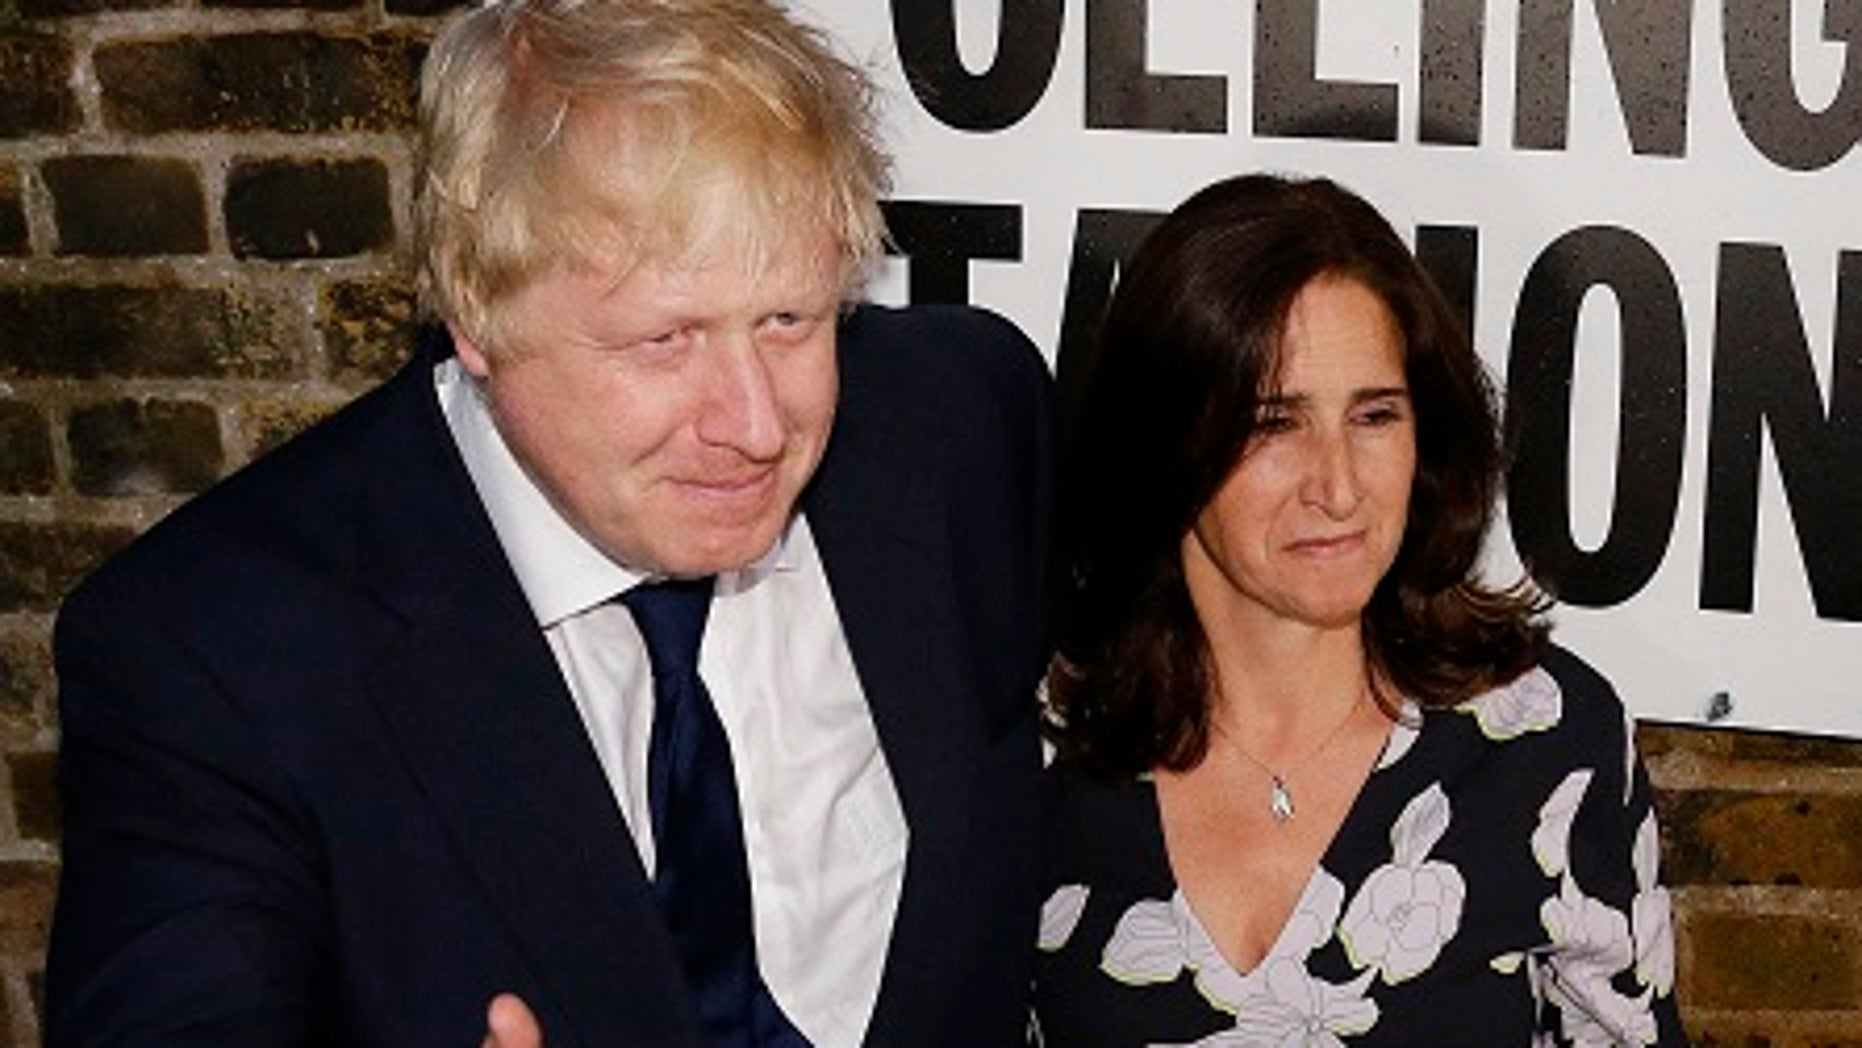 Boris Johnson and his wife Marina Wheeler are in the process of divorcing.